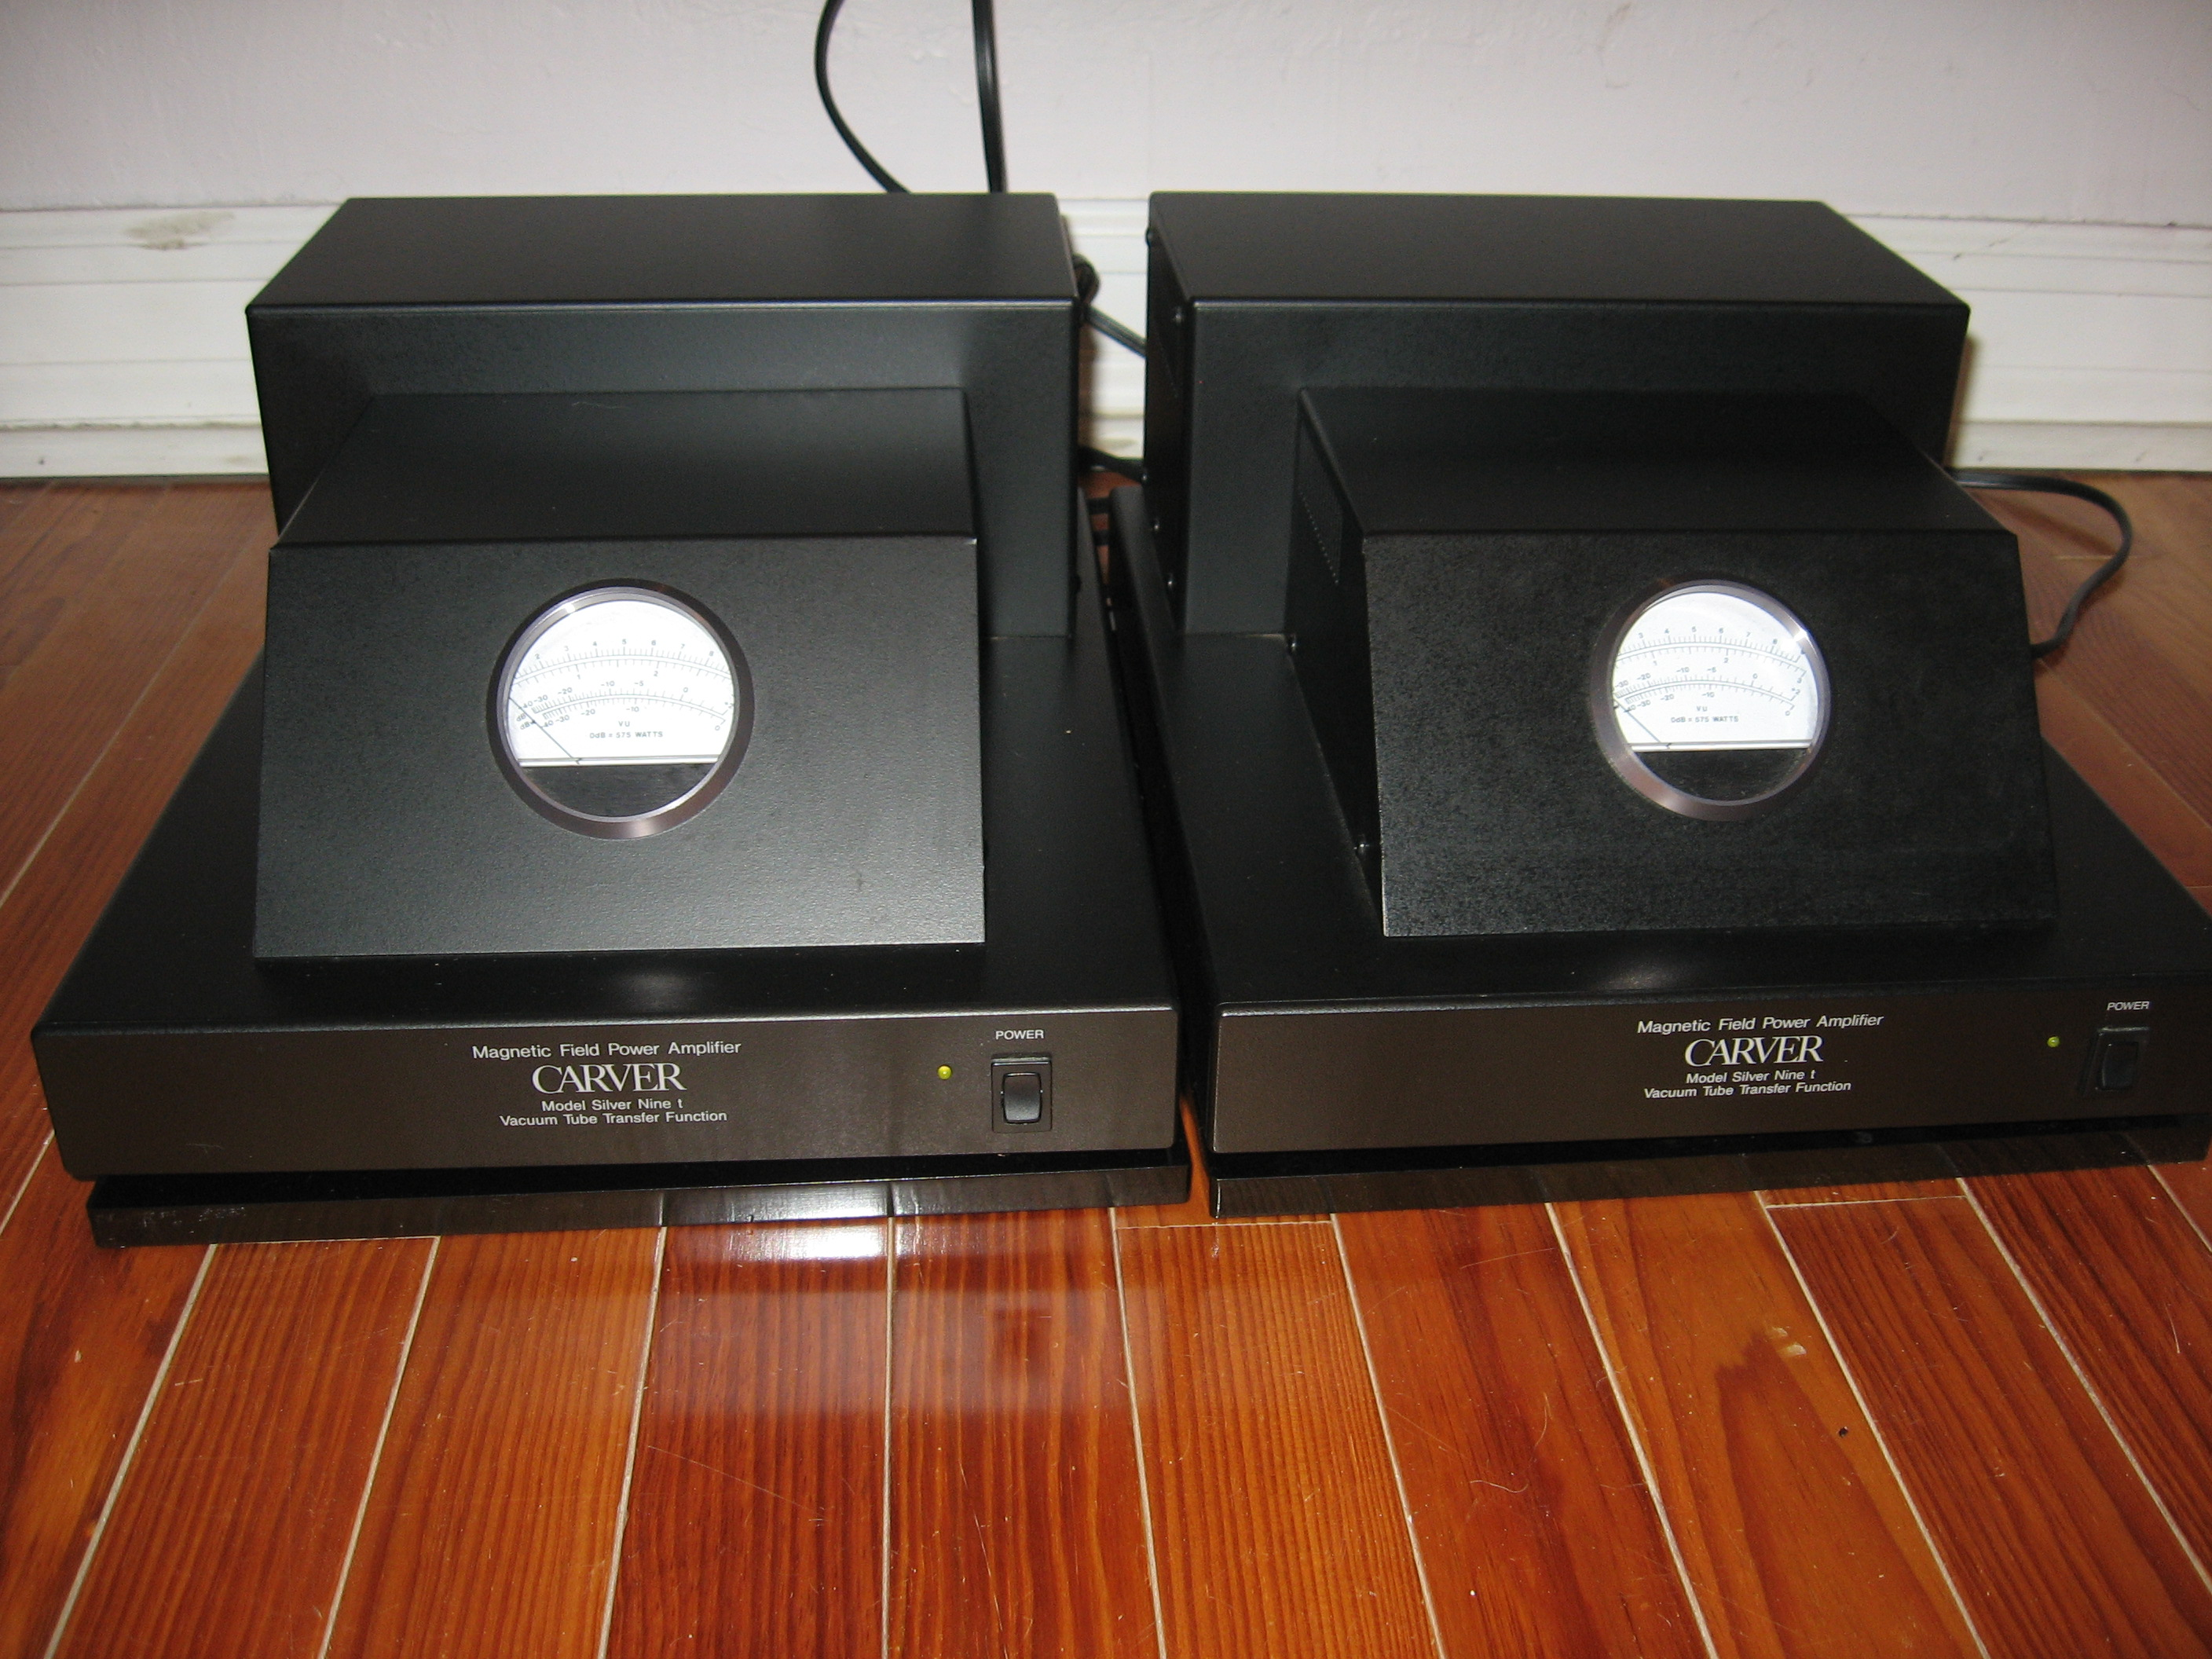 Carver Silver 9t Technical Modifications The Klipsch Audio Community Tube Monoblock Amplifiers Post 42057 13819598241572 Thumb